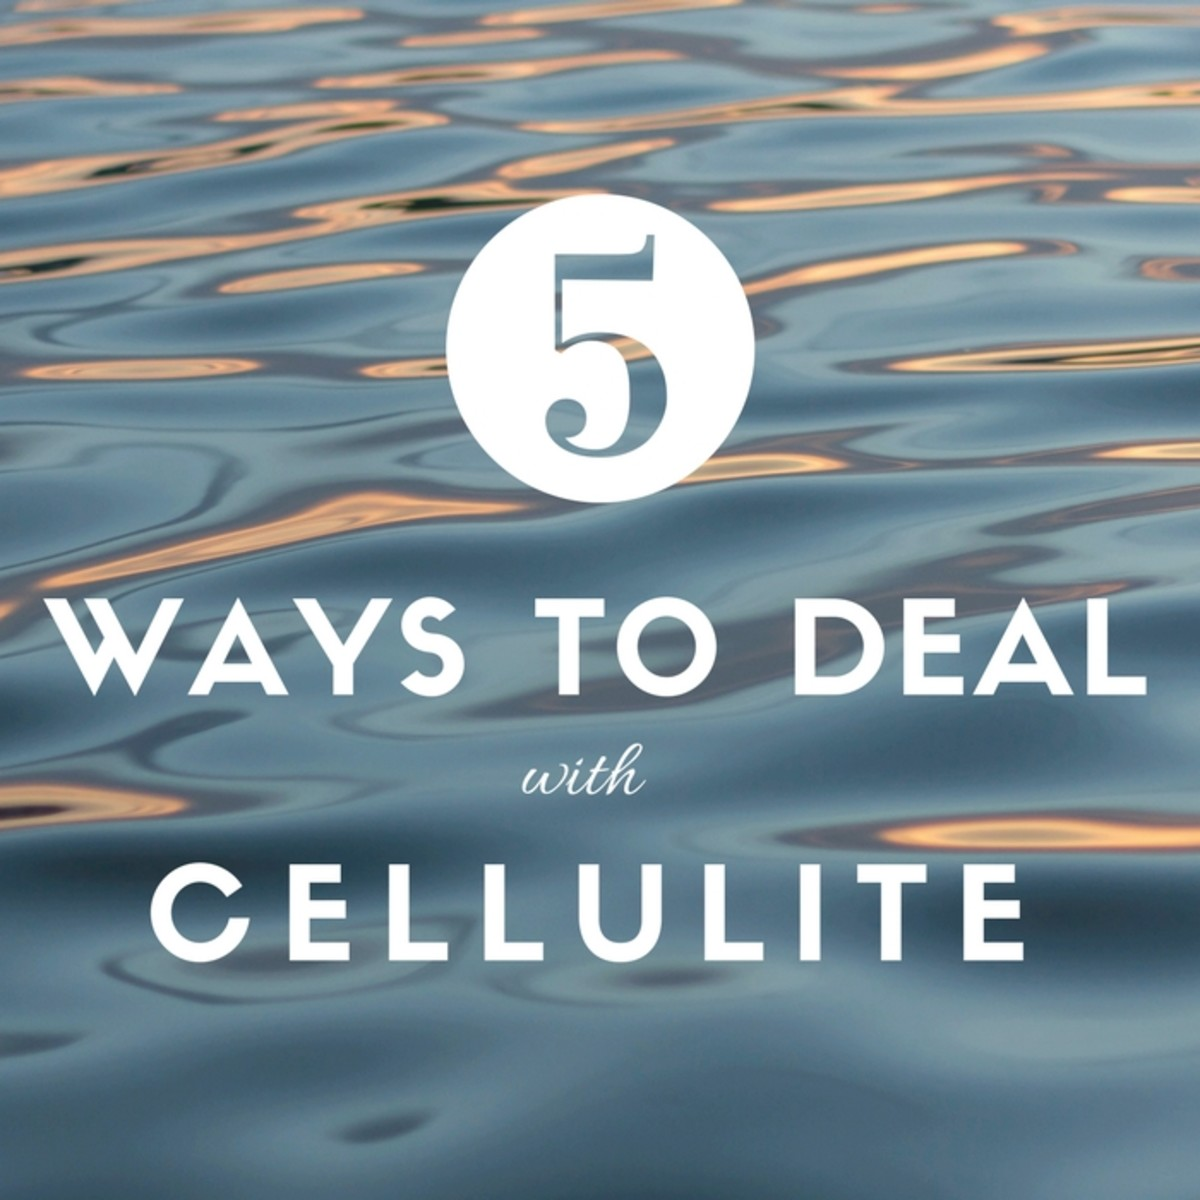 5 ways to deal with cellulite